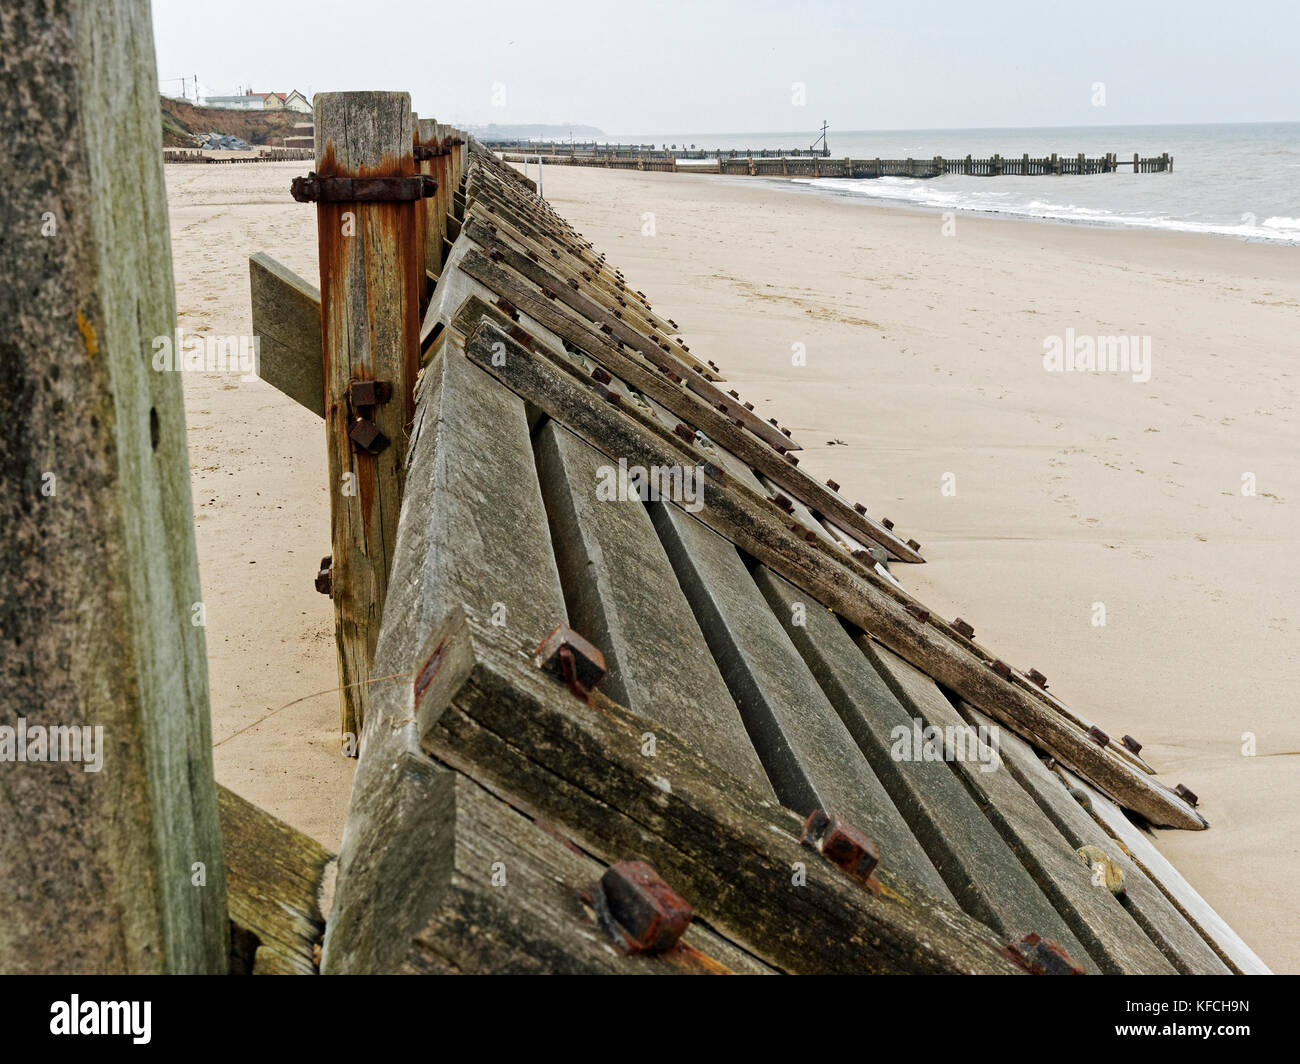 A sloped timber wall or groyne designed to break the strength of waves to provide protection for soft rock cliffs - Stock Image